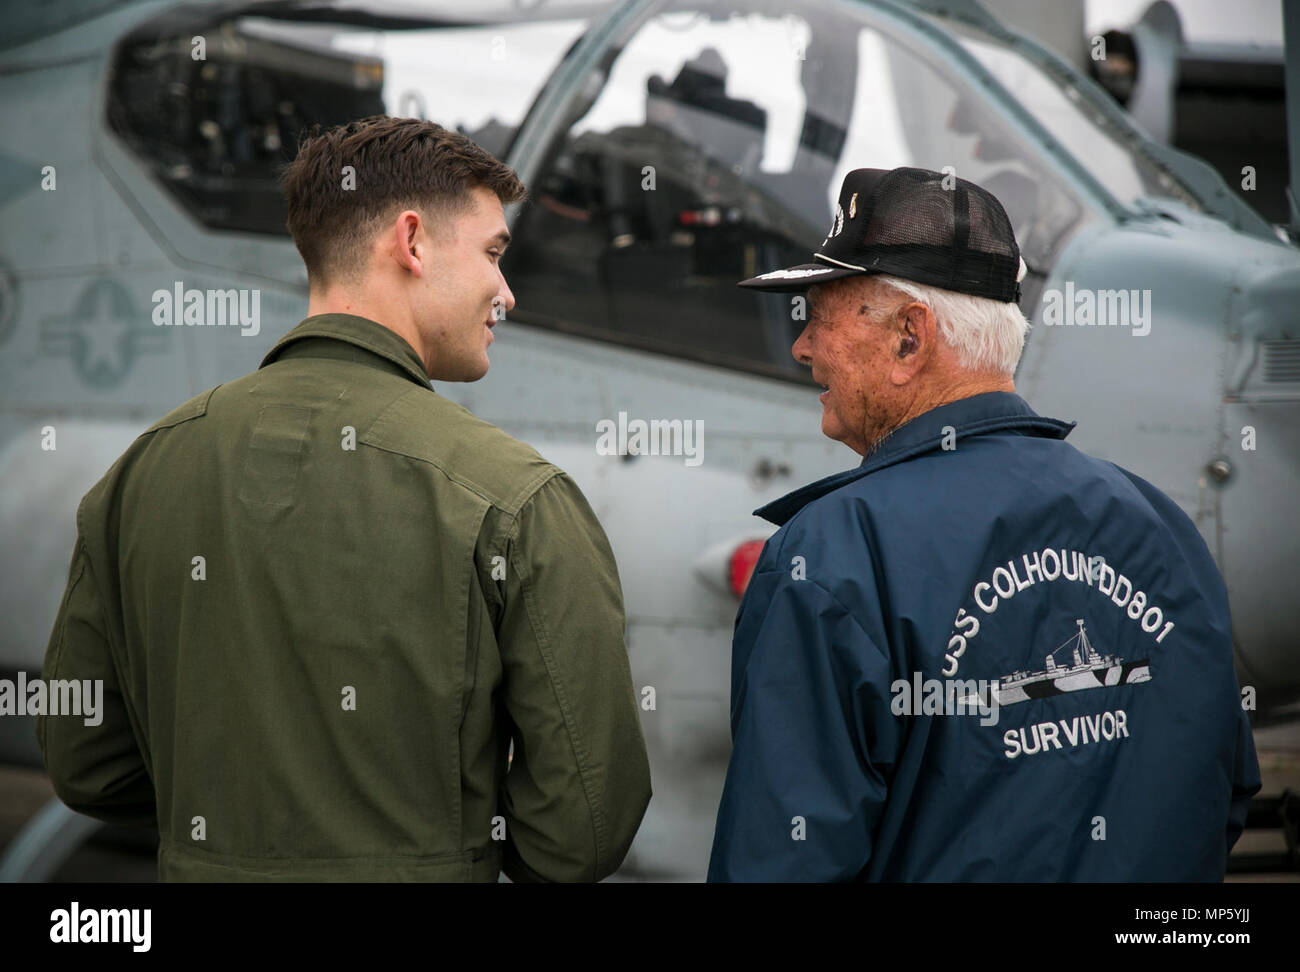 U.S. Marine Capt. Joe Hamlin gives Donald Irwin, a United States Navy World War II veteran, a tour of the Bell AH-1Z Super Cobra, April 7, 2017 on Marine Corps Air Station Futenma, Okinawa, Japan. Irwin, who served aboard a number of ships during World War II, fought at Midway and Guadalcanal and survived the sinking of the USS Colhoun during the Battle of Okinawa. Irwin returned to Okinawa and exchanged stories with the Marines and Sailors stationed on the island. Irwin is a San Jose, California native, and Hamlin, a Corbin, Kentucky, native, is a Bell AH-1 Super Cobra pilot with Marine Mediu Stock Photo